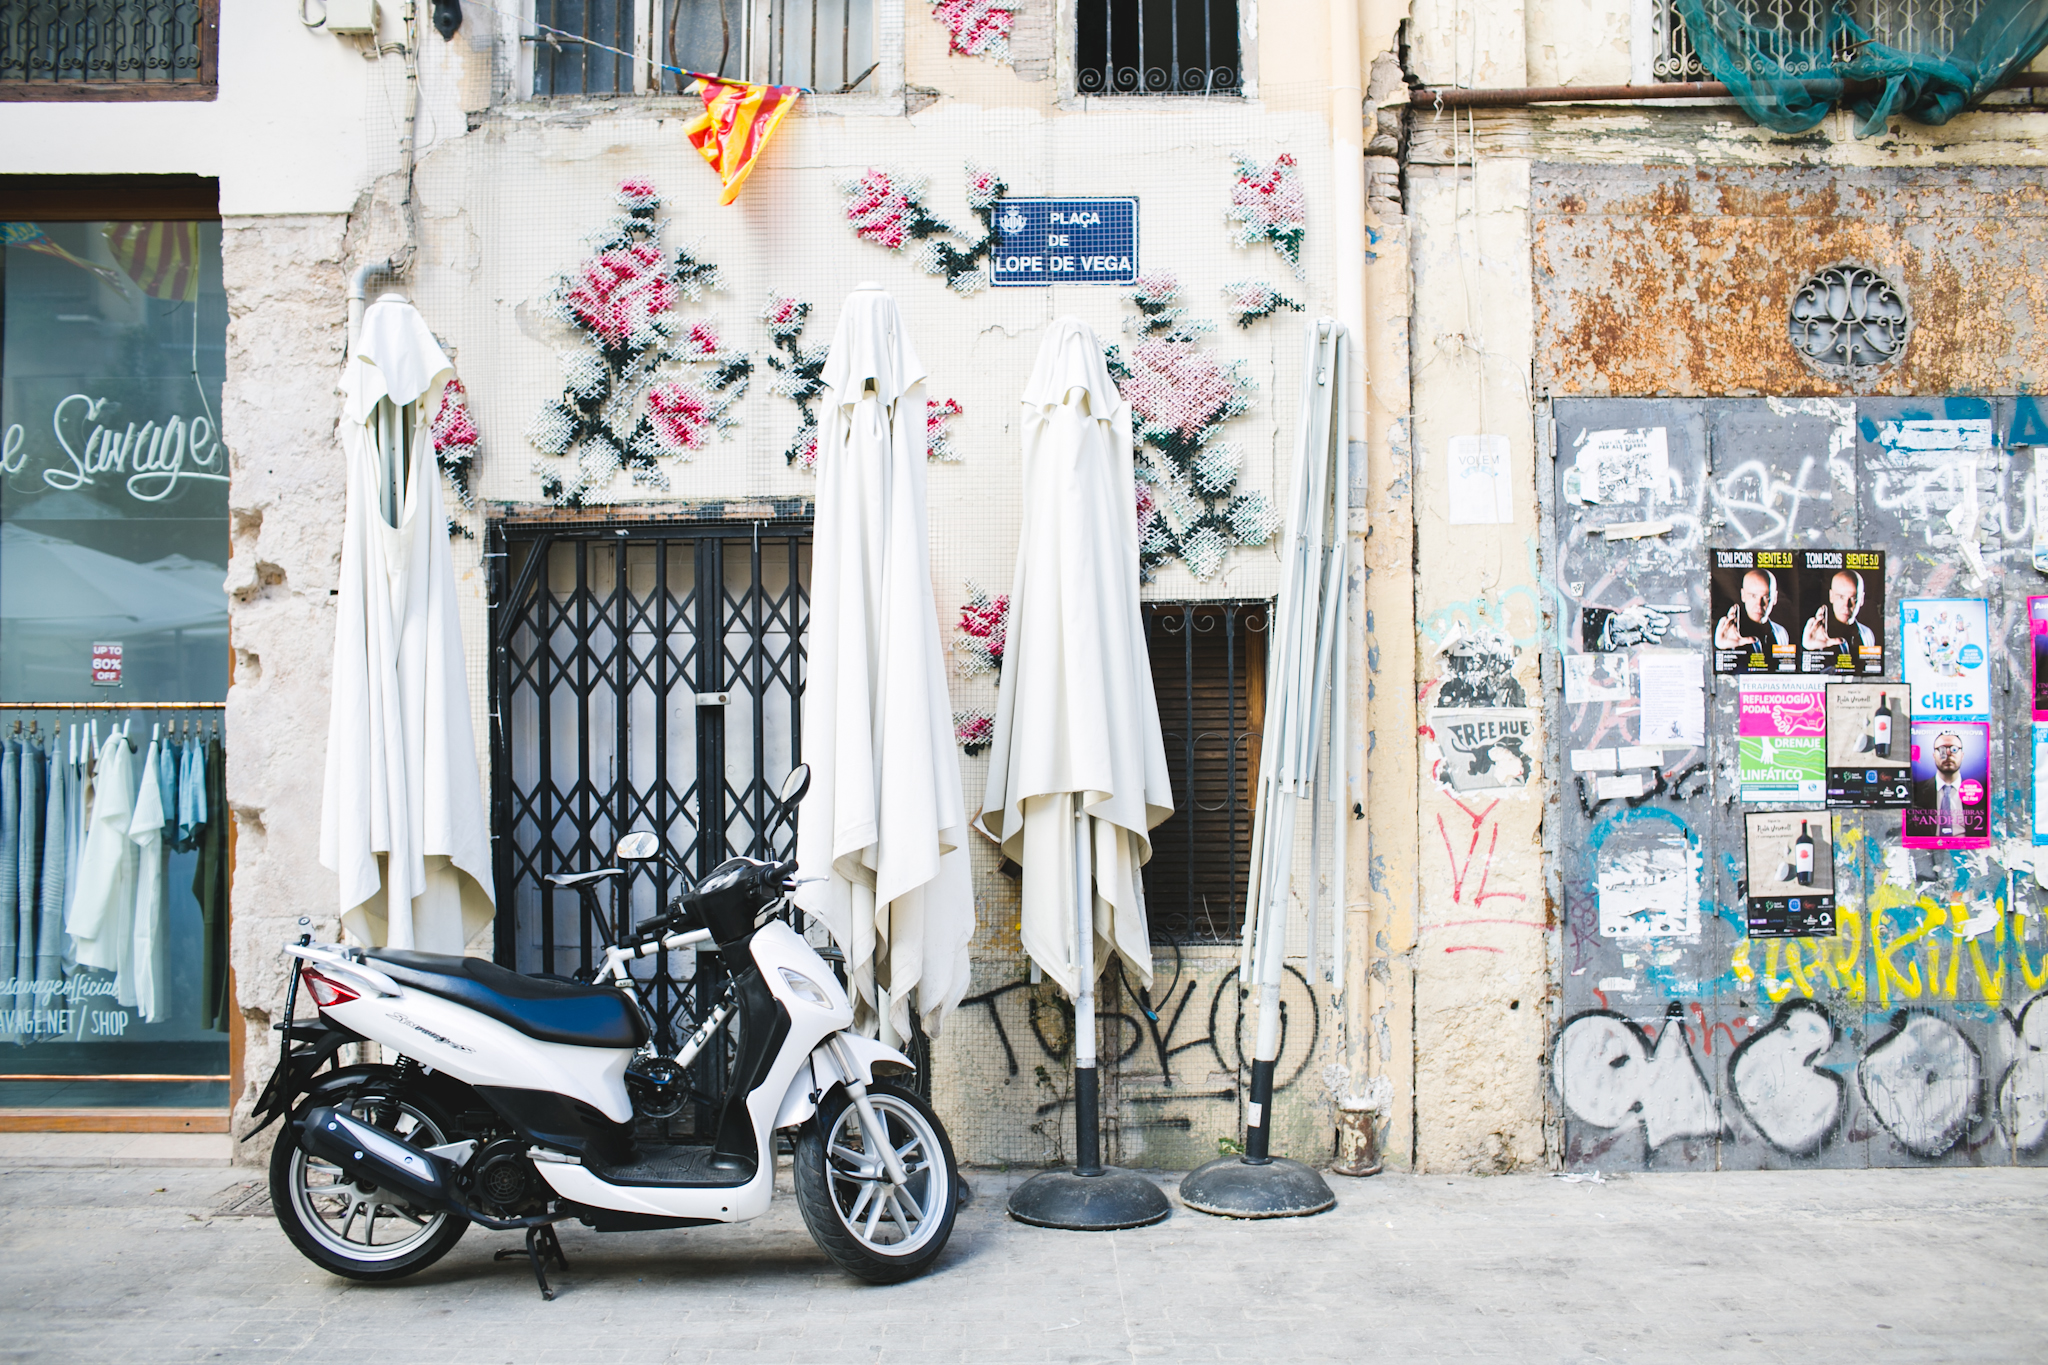 Here's a visual glimpse of what made Valencia so confusingly beautiful: Romantic vs. grunge + old versus new.